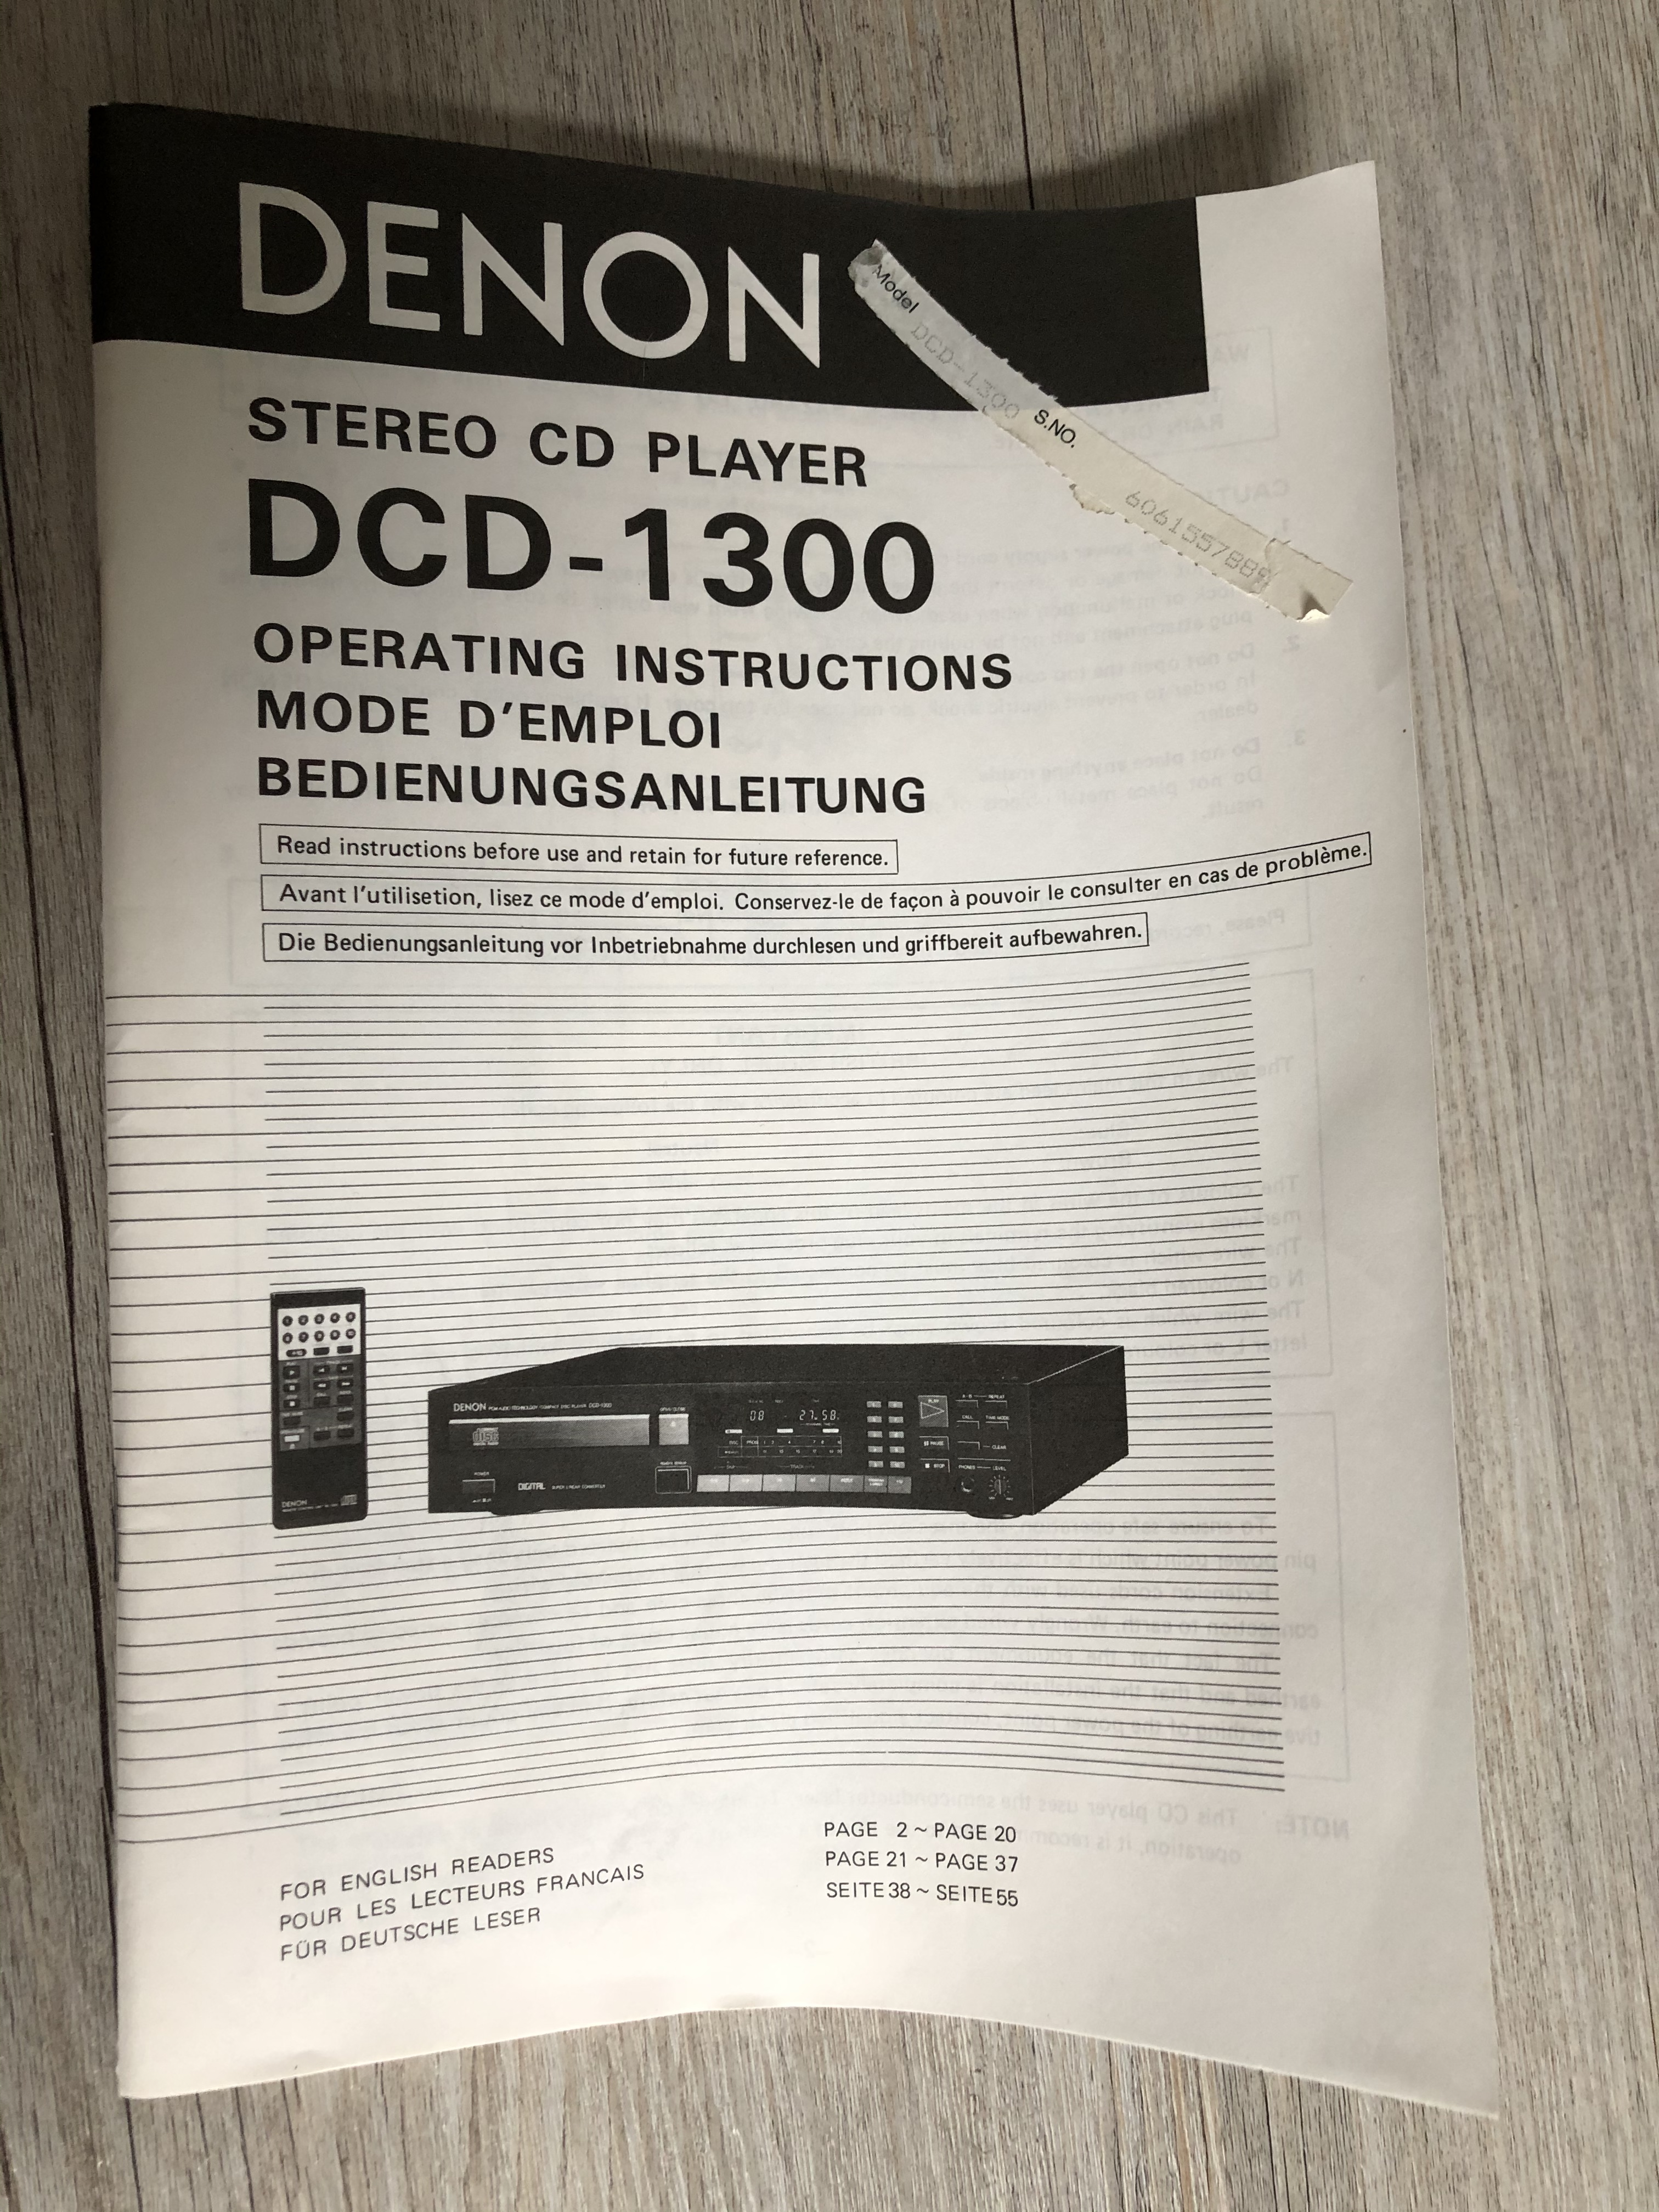 Denon DCD-1300 Manual